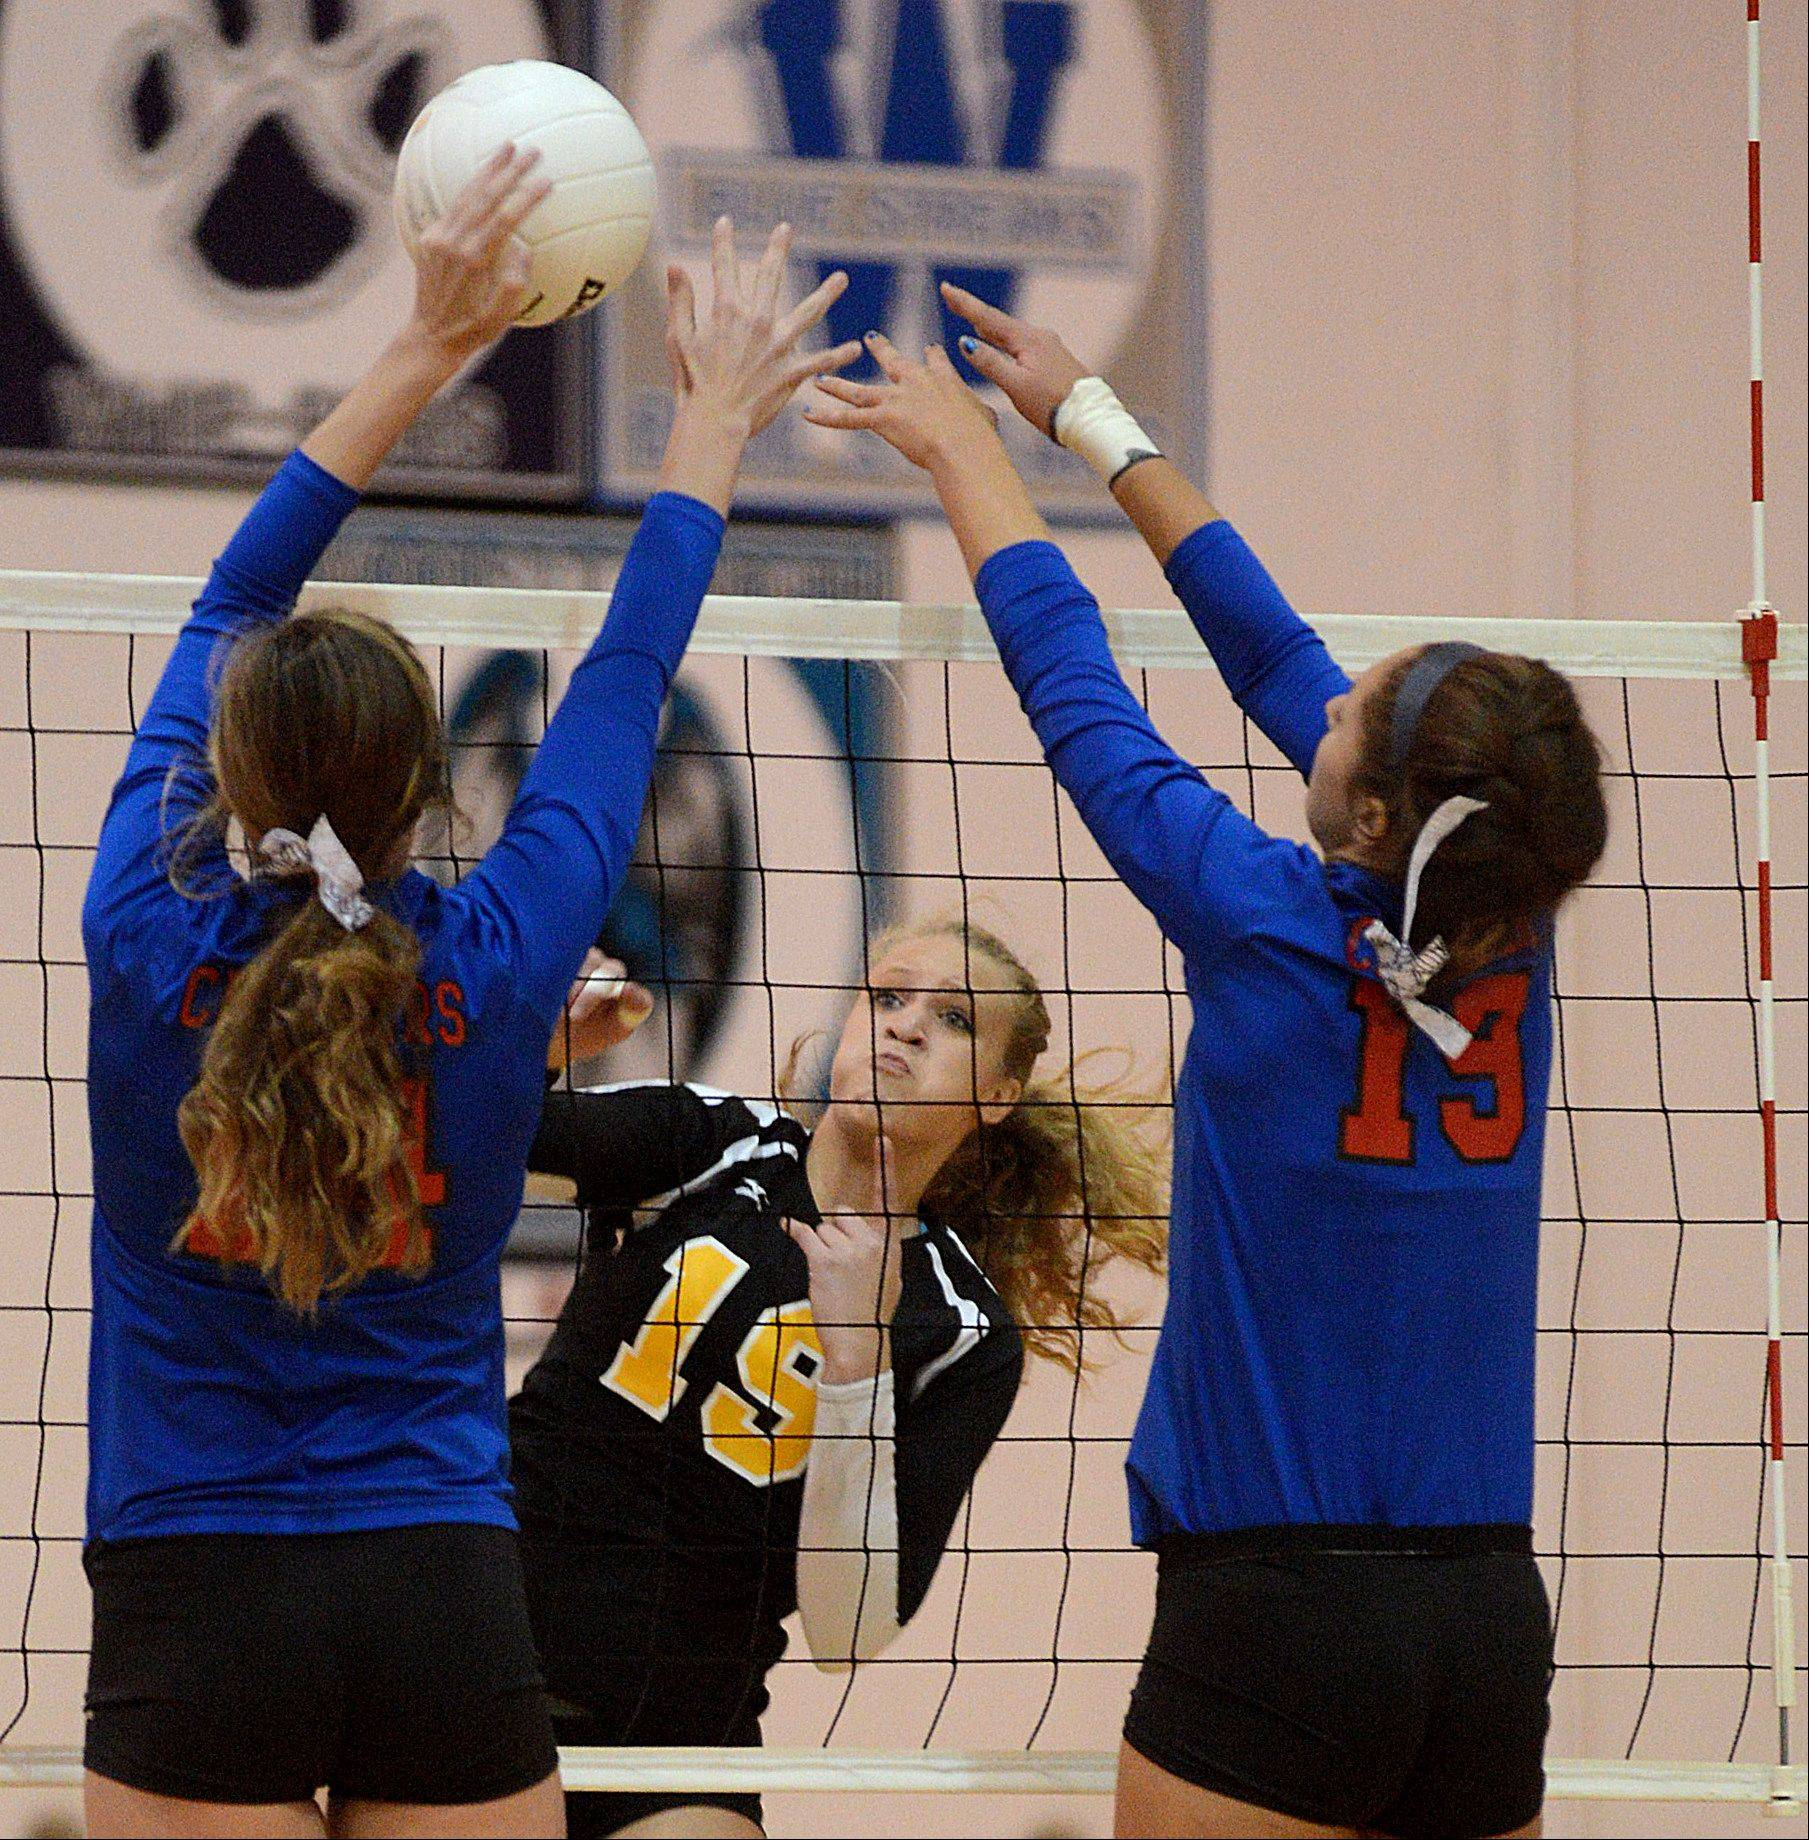 Dundee-Crown's Emily Michalski, left, and Ashley Raby, right, try to block Jacobs' Kyla Fitzsimmons, center, during a varsity volleyball game at Algonquin on Tuesday night.